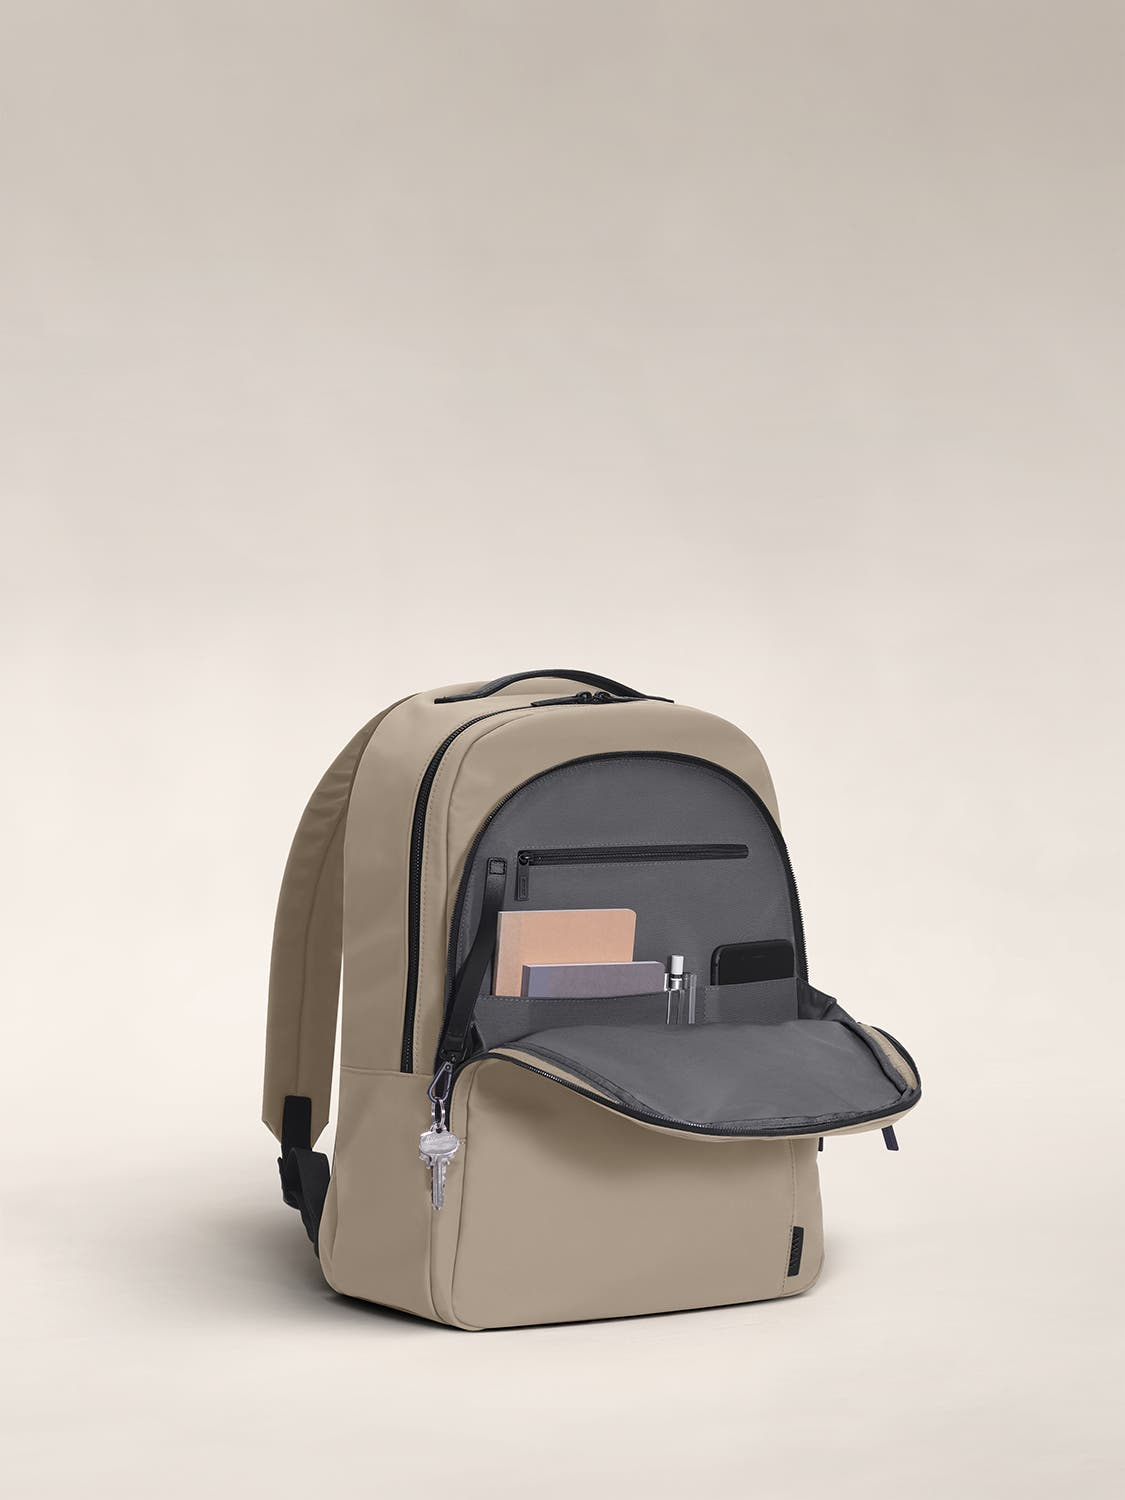 Open front flap of a sand backpack with organized pockets shown with notebooks.